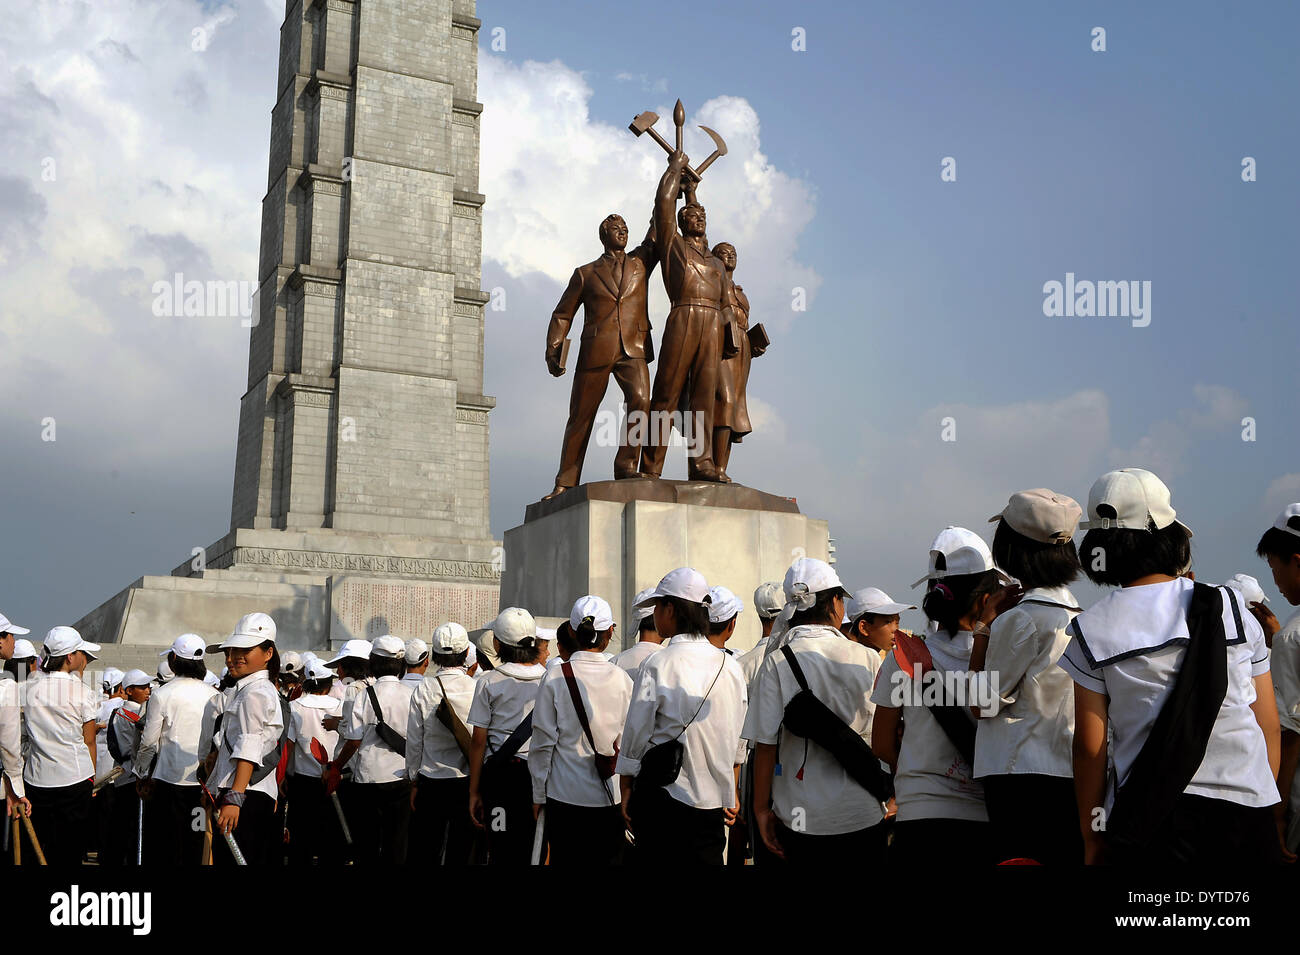 At the Juche Tower - Stock Image